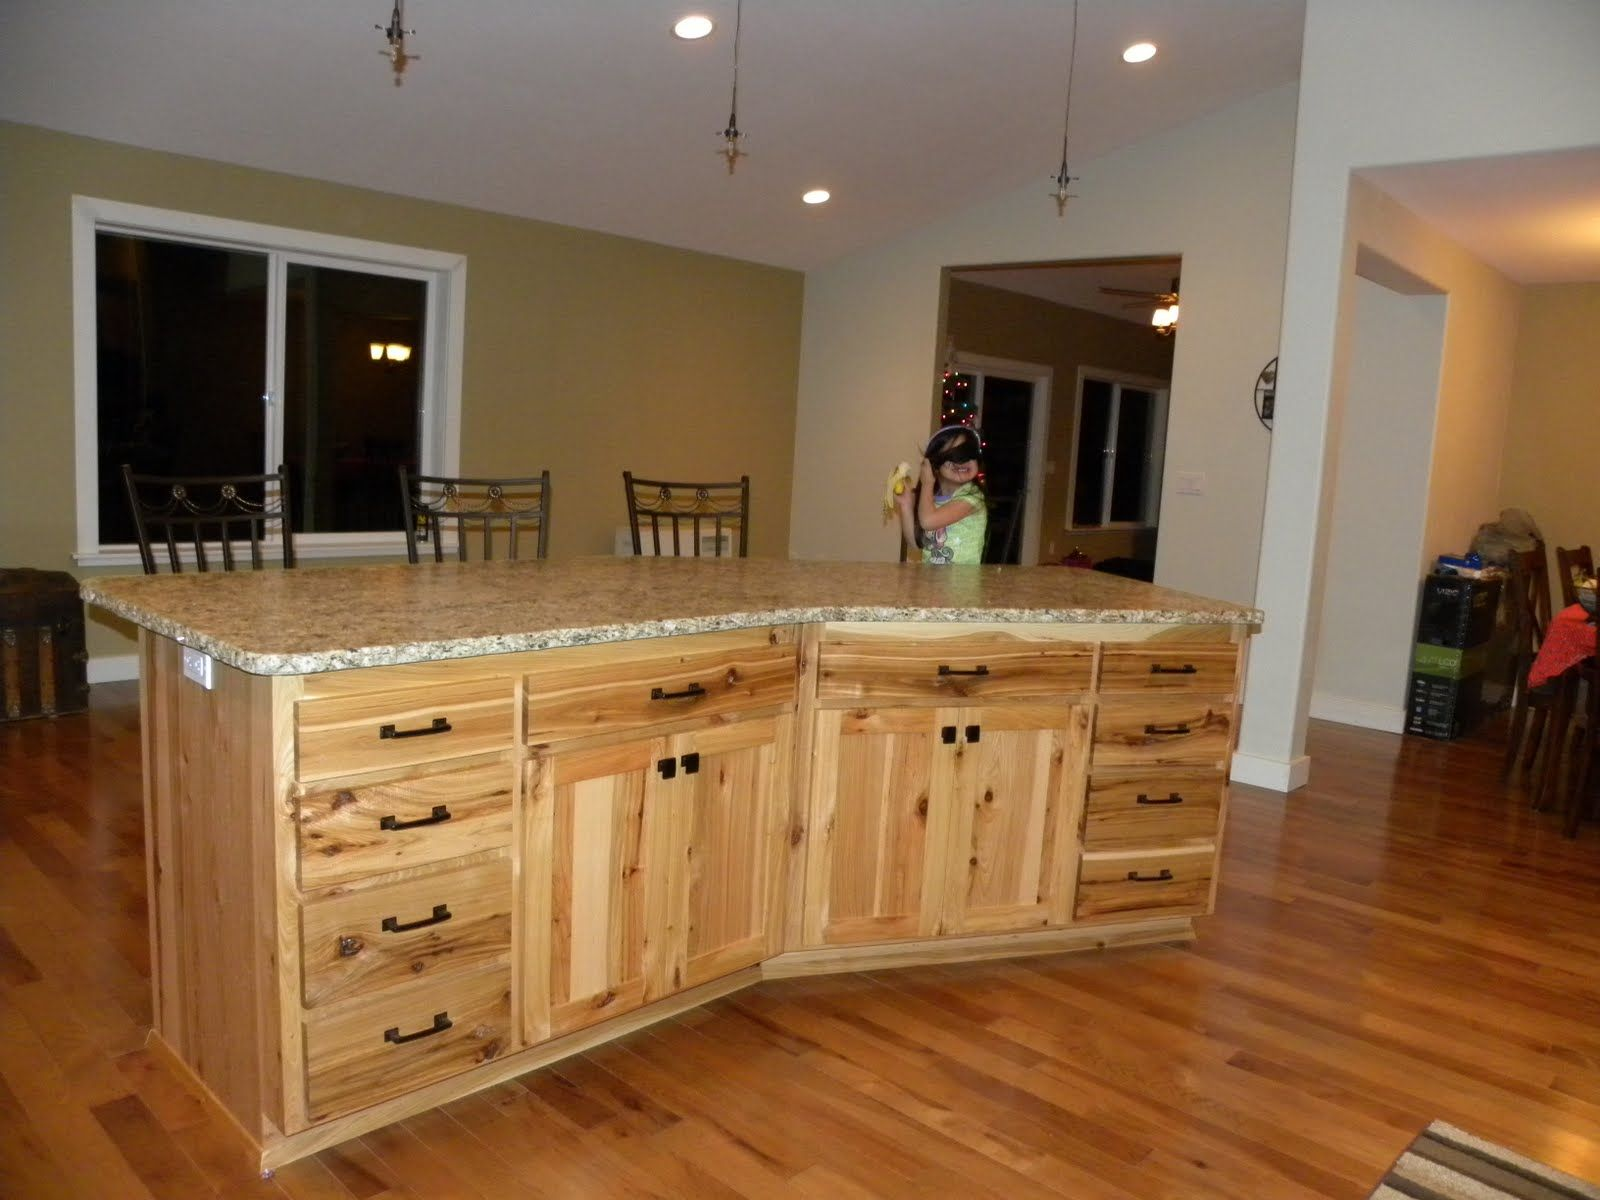 related image kitchen cabinet styles rustic kitchen cabinets shaker style kitchen cabinets on kitchen interior cabinets id=26332